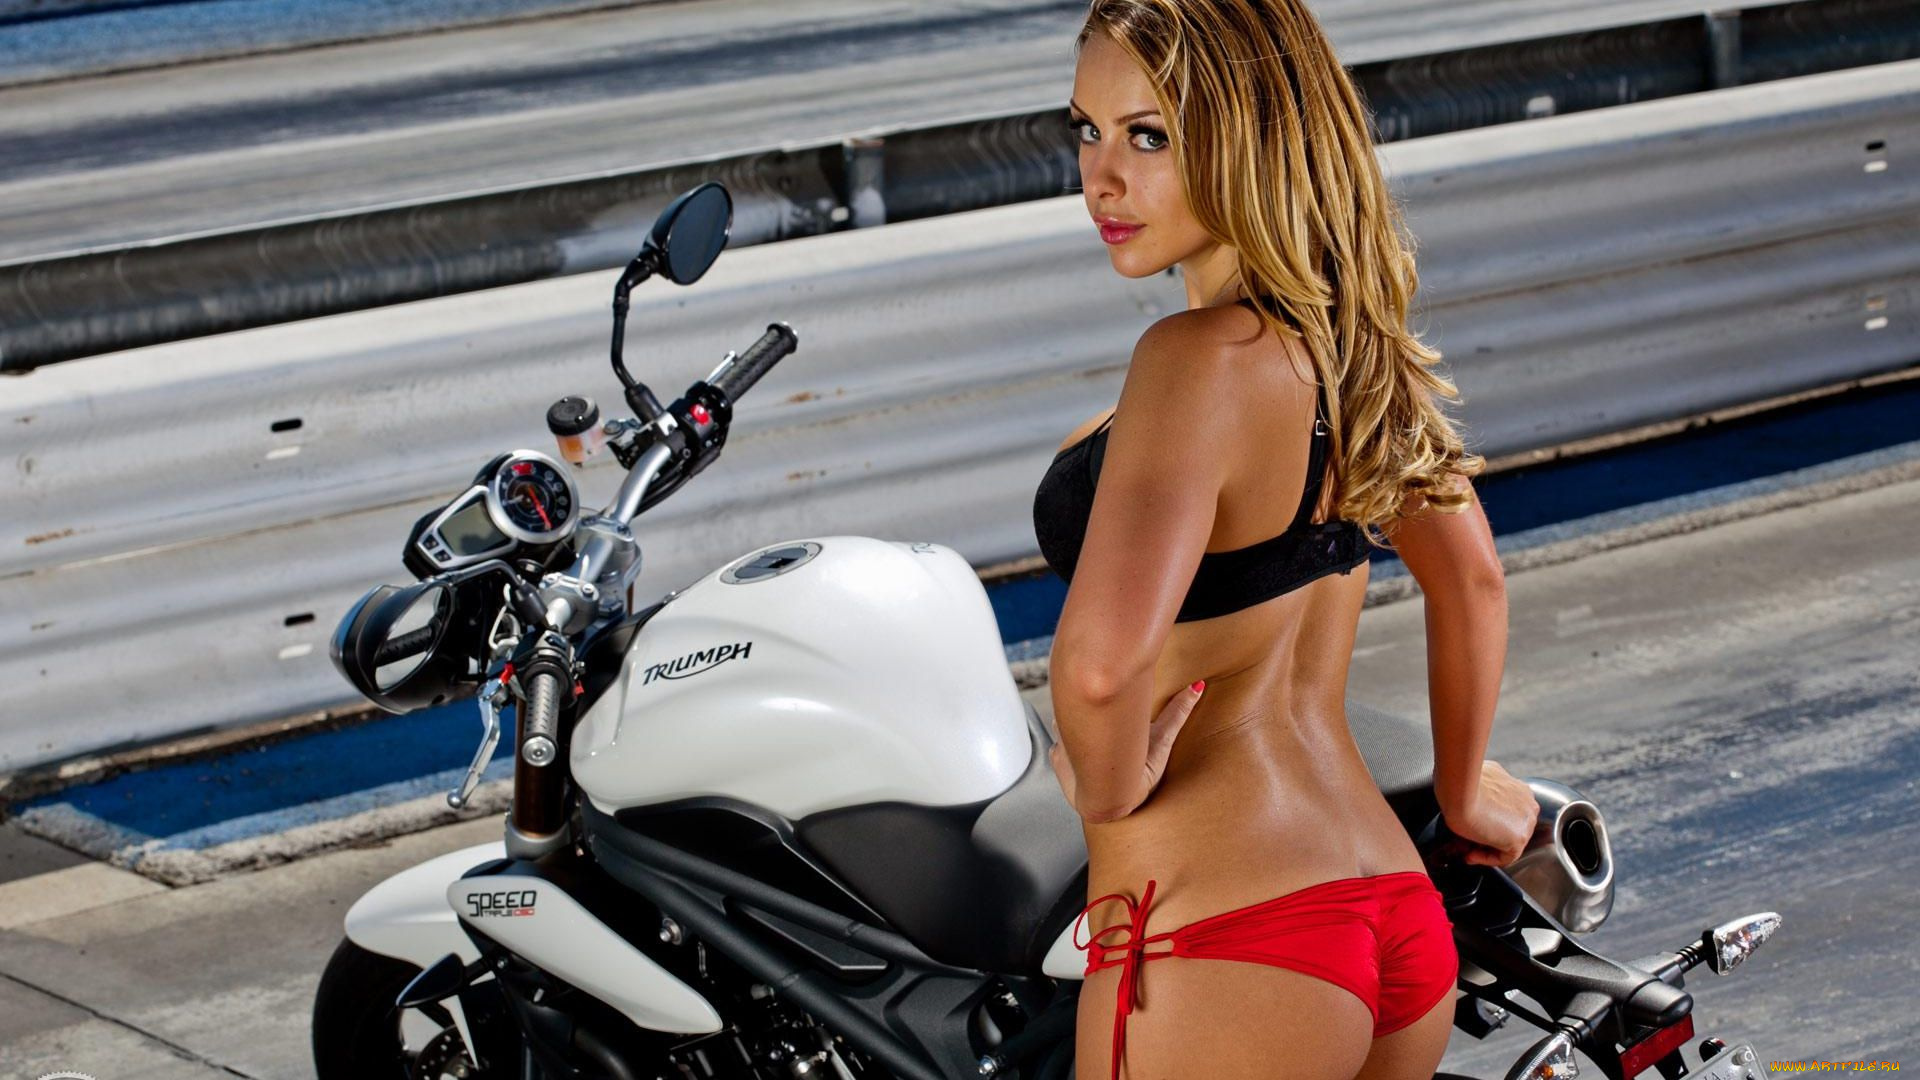 Two sexy vintage custom motorcycles cafe stock photo